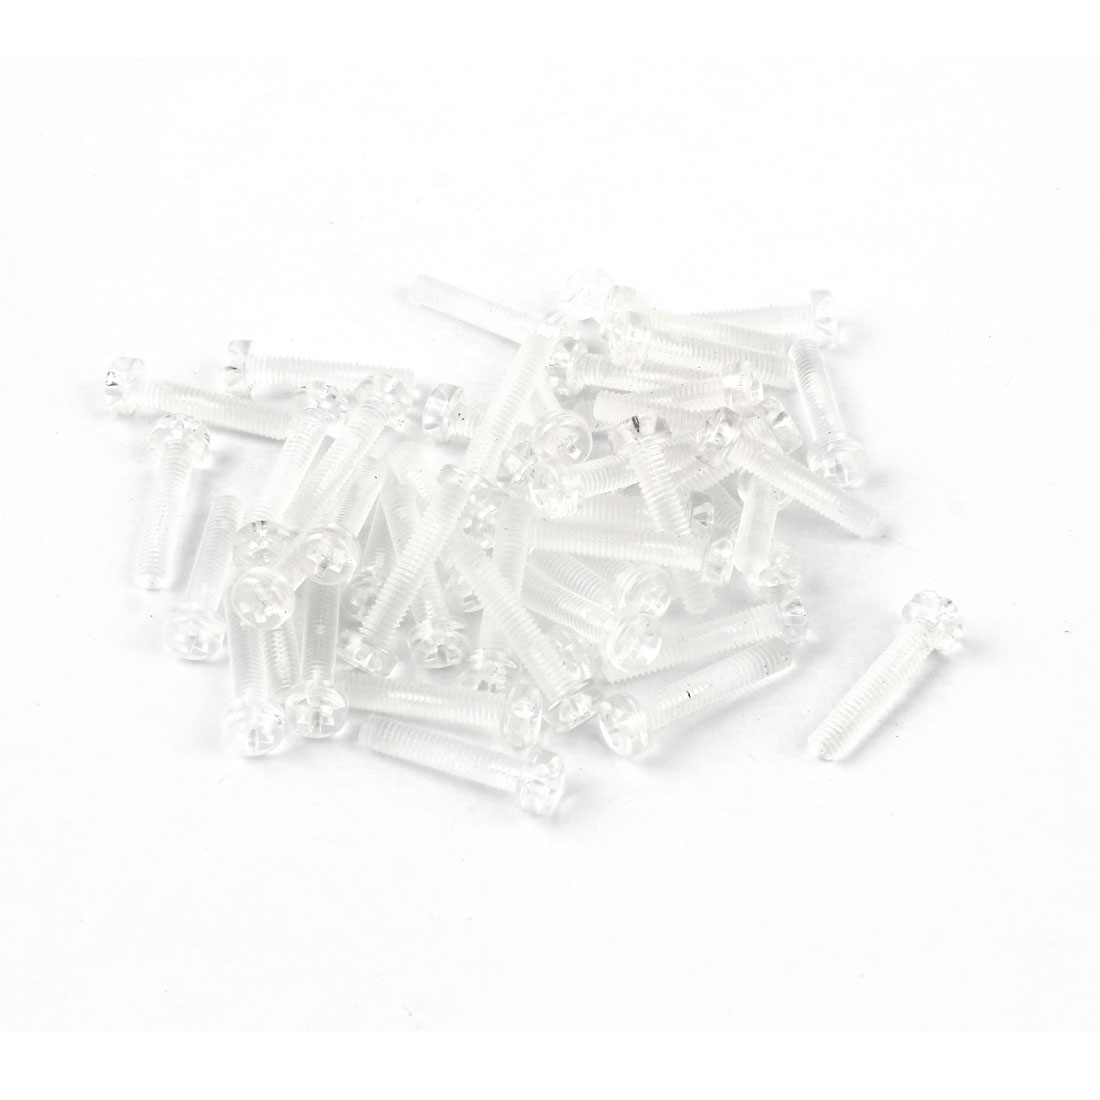 M4 x 20mm Clear Polycarbonate Phillips Round Head Machine Screws 50pcs